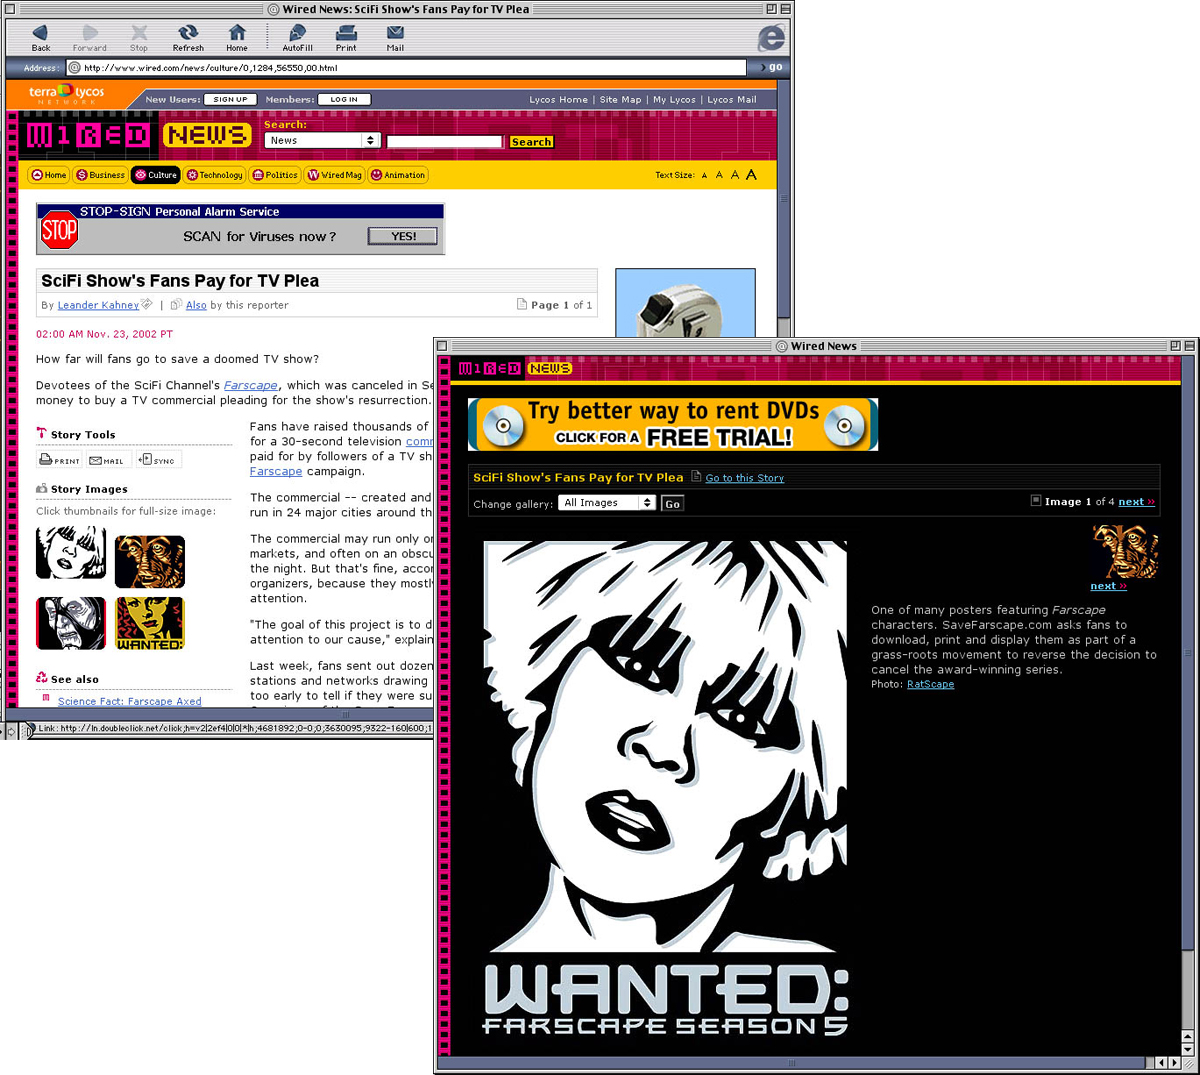 Websites Wired.com and BBC.com reported on the campaign and encouraged viewers to download the posters to spread the word.